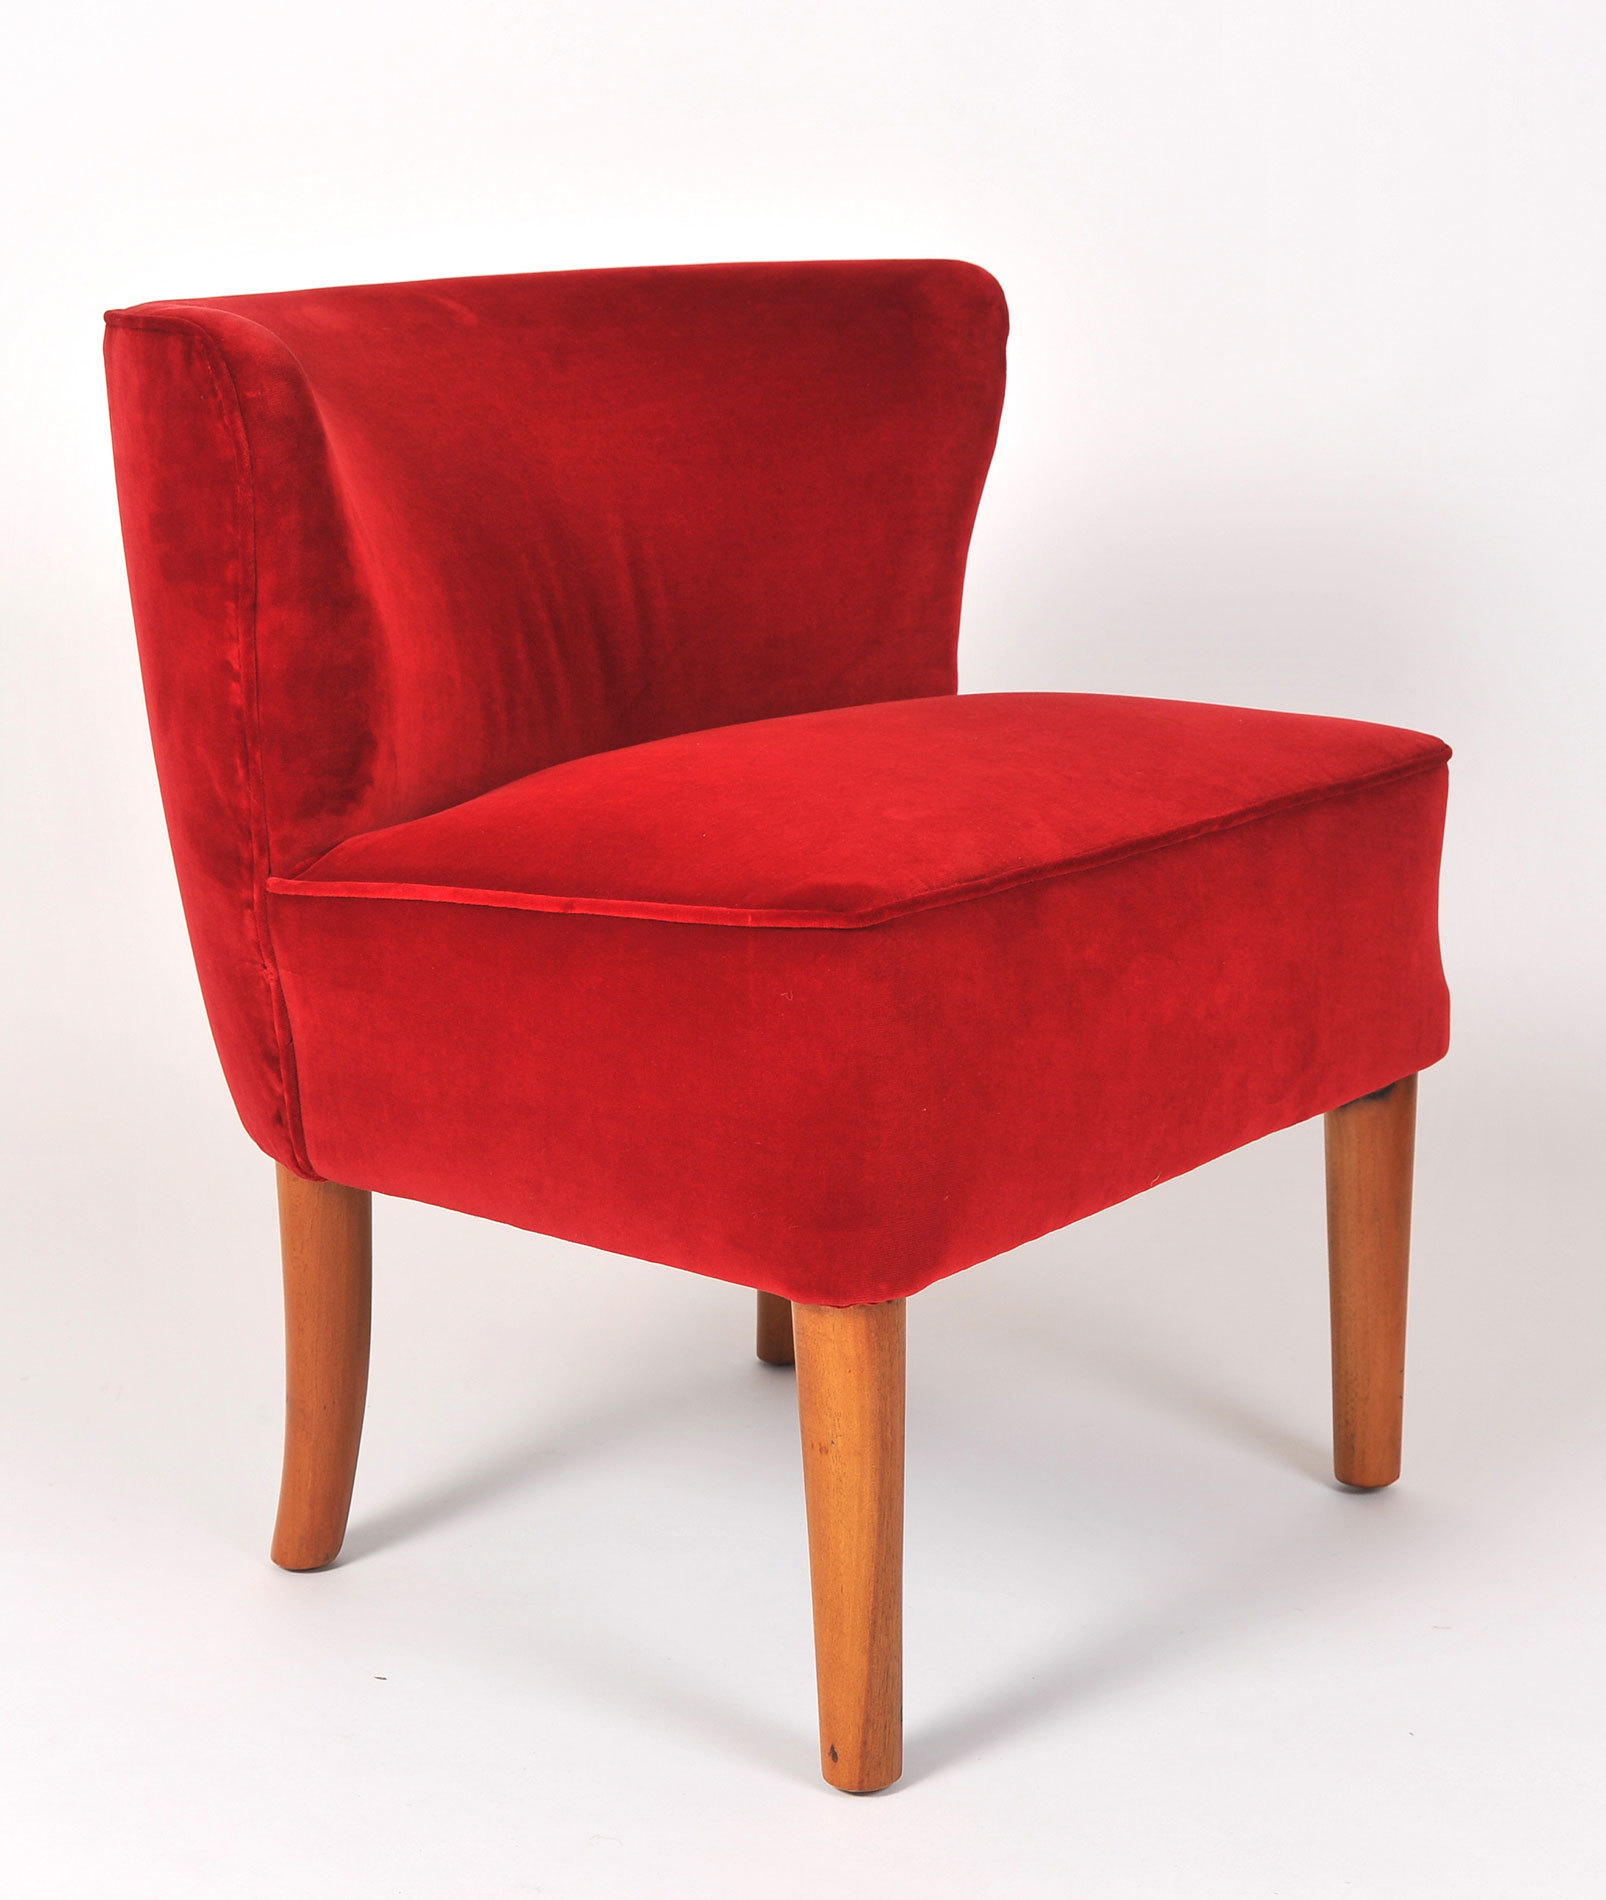 The image for Pair Red Velvet Chairs 03